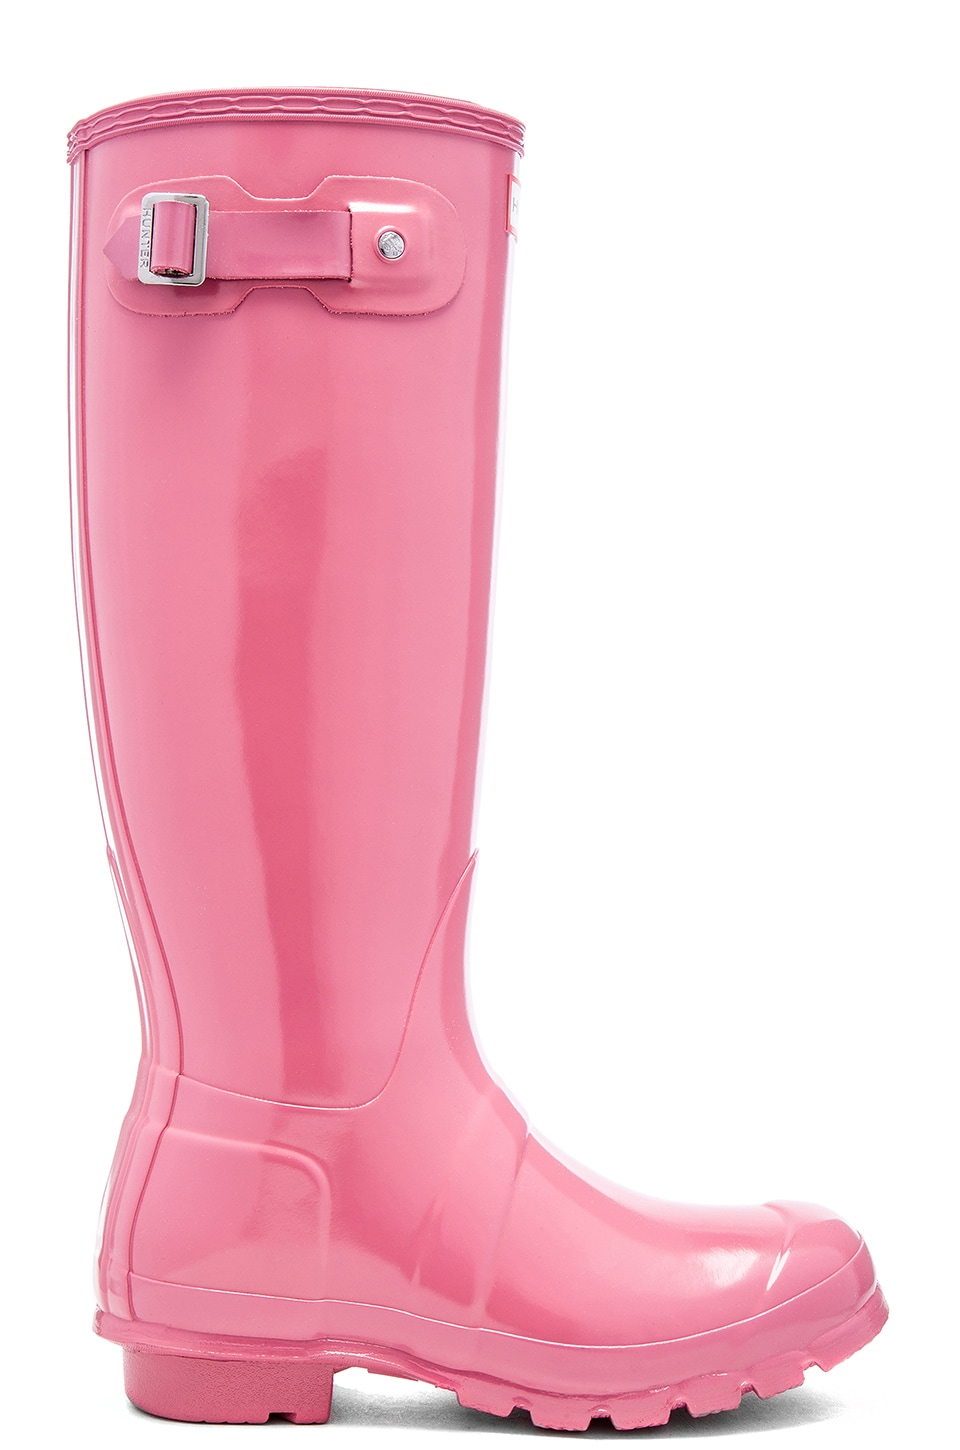 Hunter Original Tall Gloss Rain Boot in Rhodonite Pink